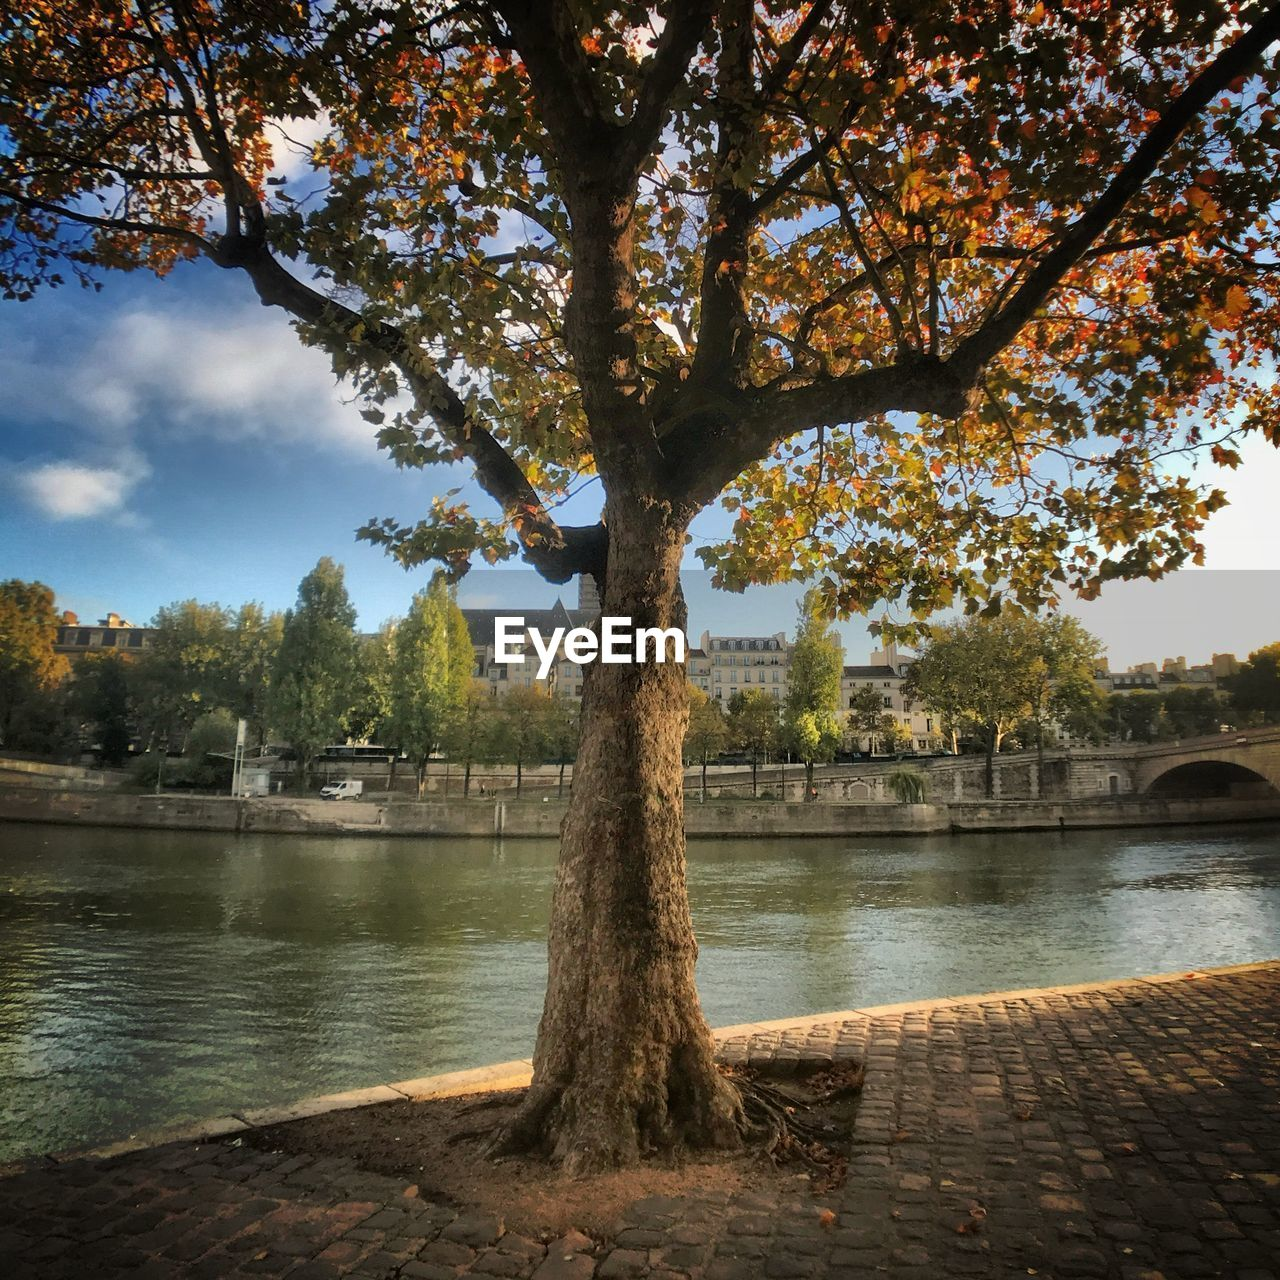 tree, water, river, tree trunk, nature, branch, growth, outdoors, day, sky, beauty in nature, no people, tranquility, scenics, built structure, riverbank, architecture